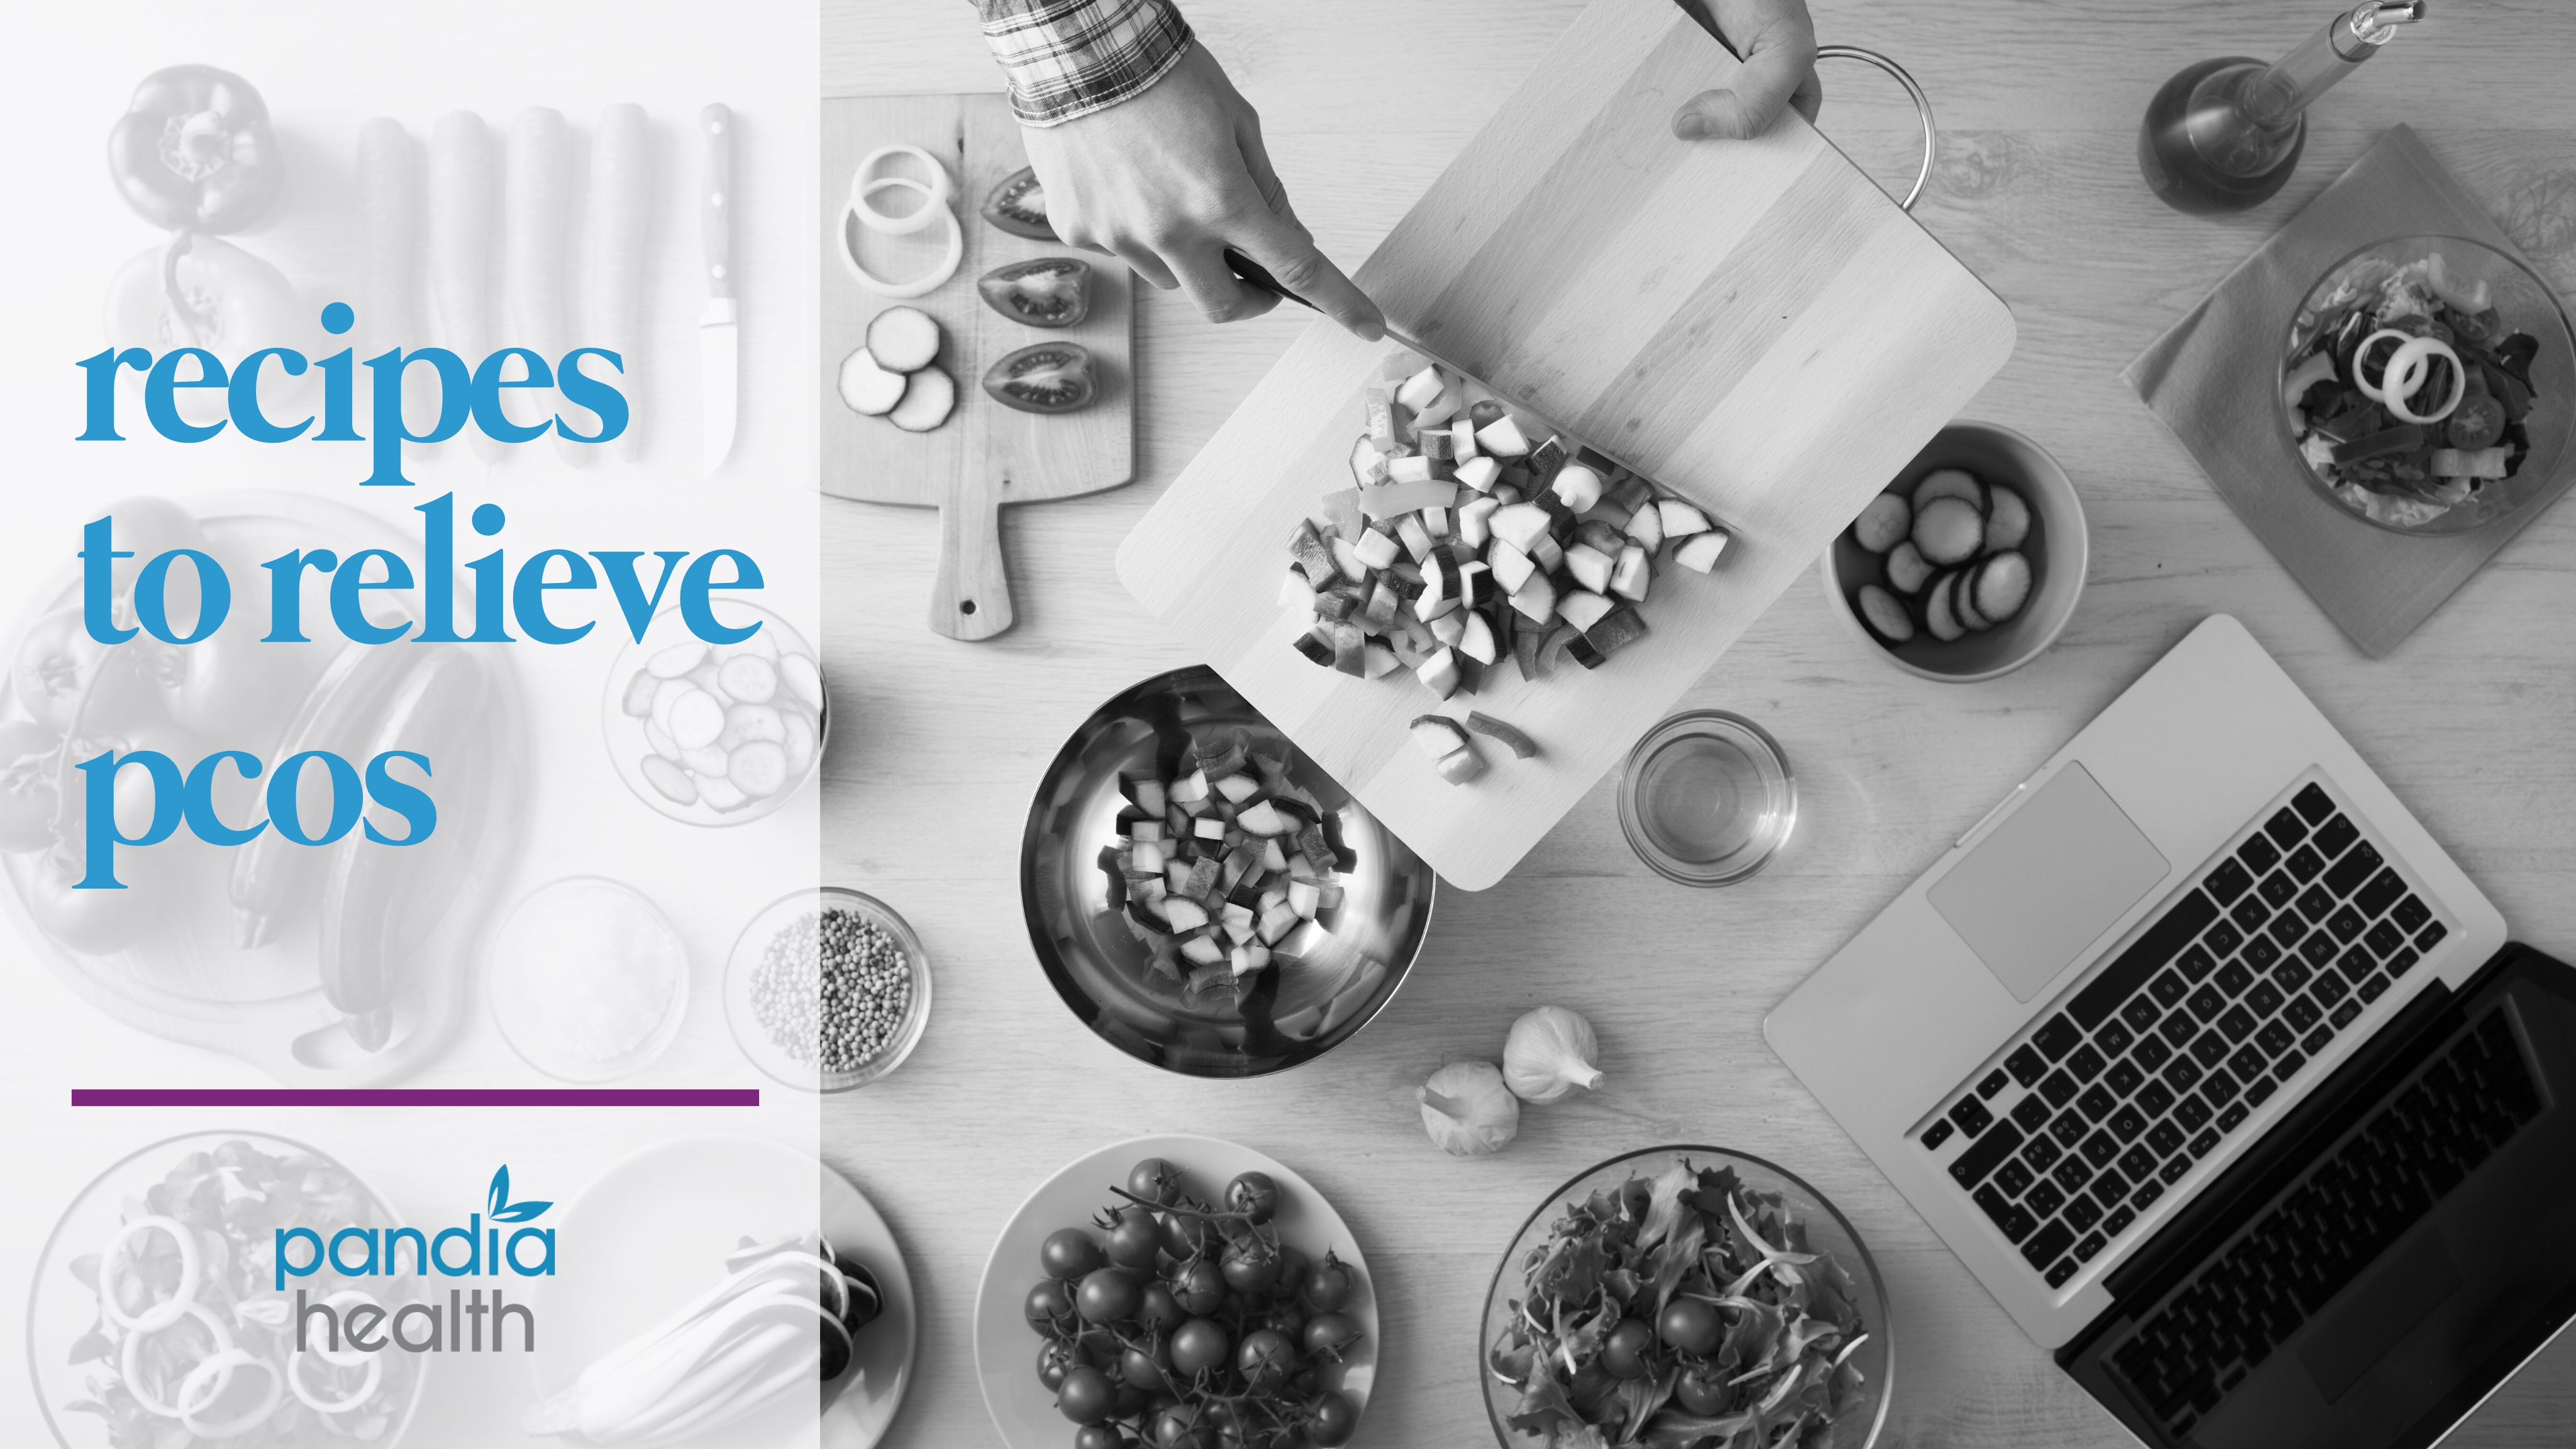 blog header image, birds eye view of cooking. lots of ingredients, someone is chopping. Blog featured image